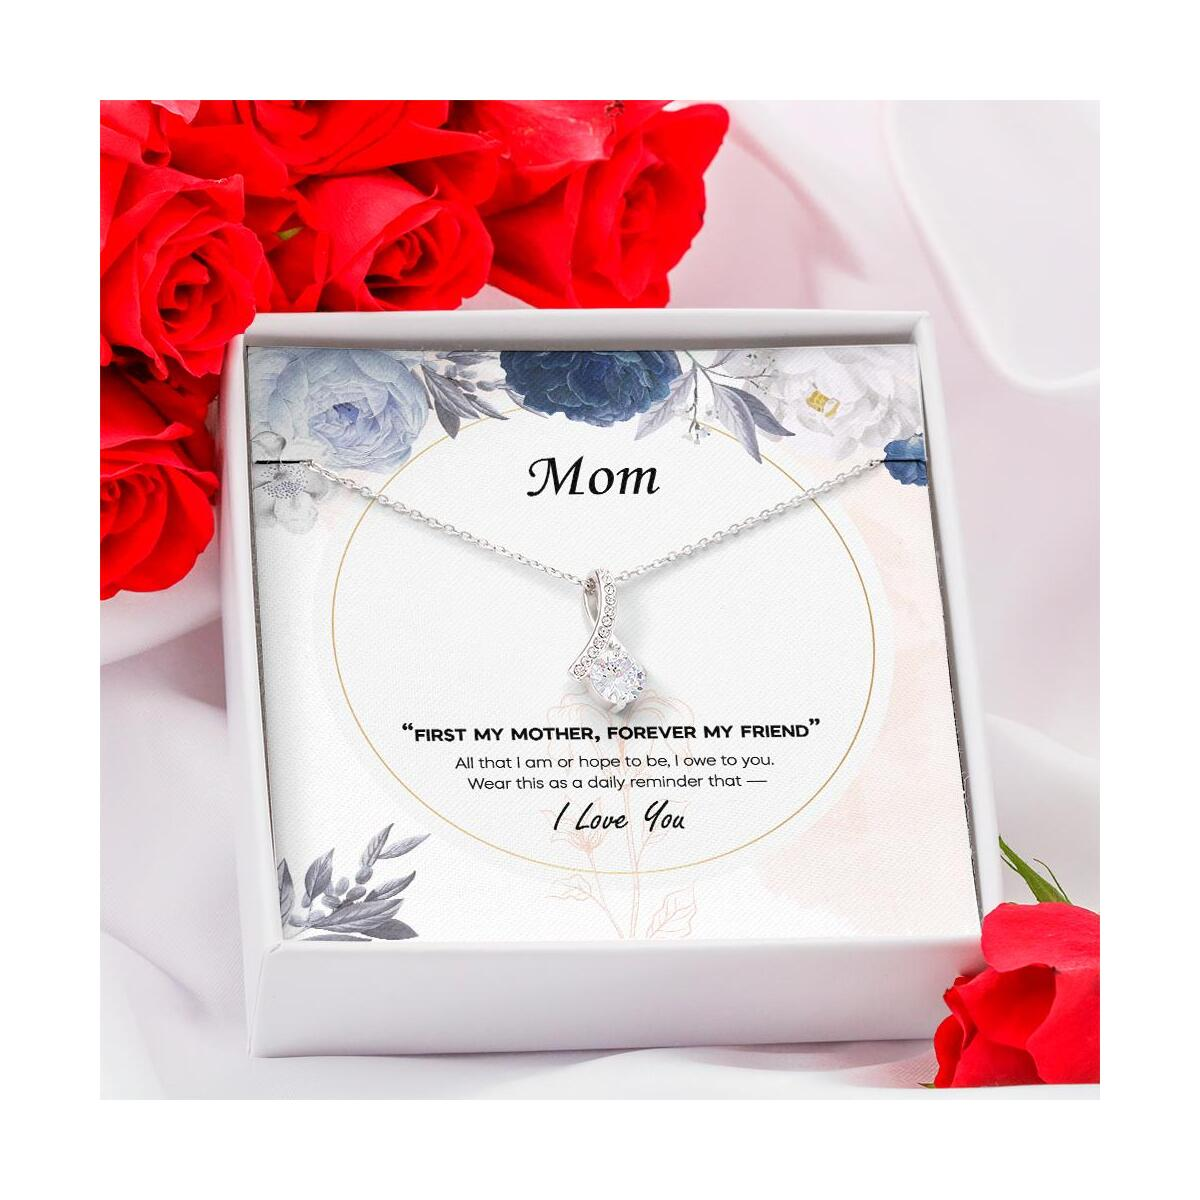 Mom You Are Forever My Friend Gift